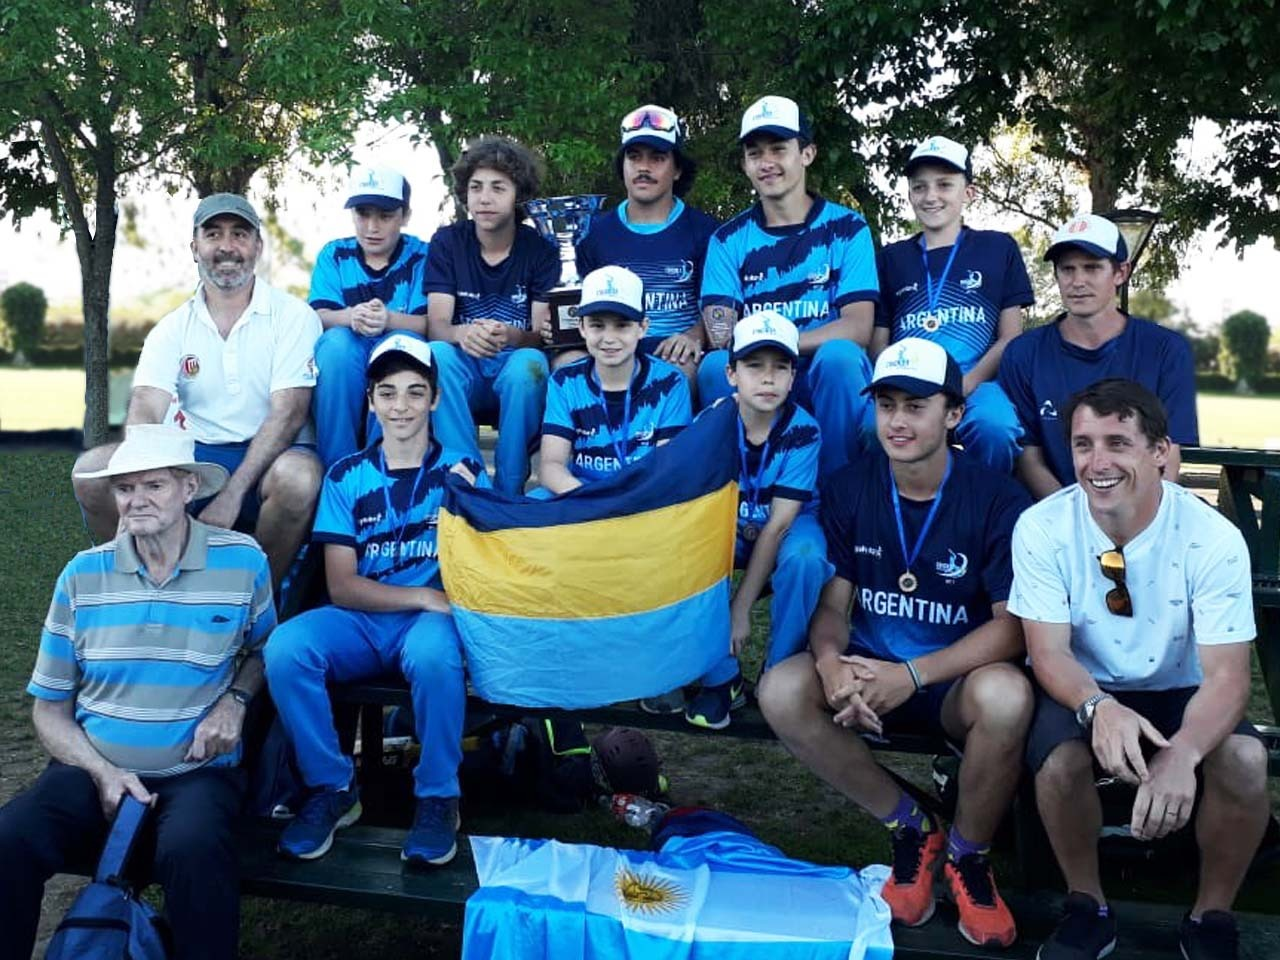 Cricket Sudamericano 2018